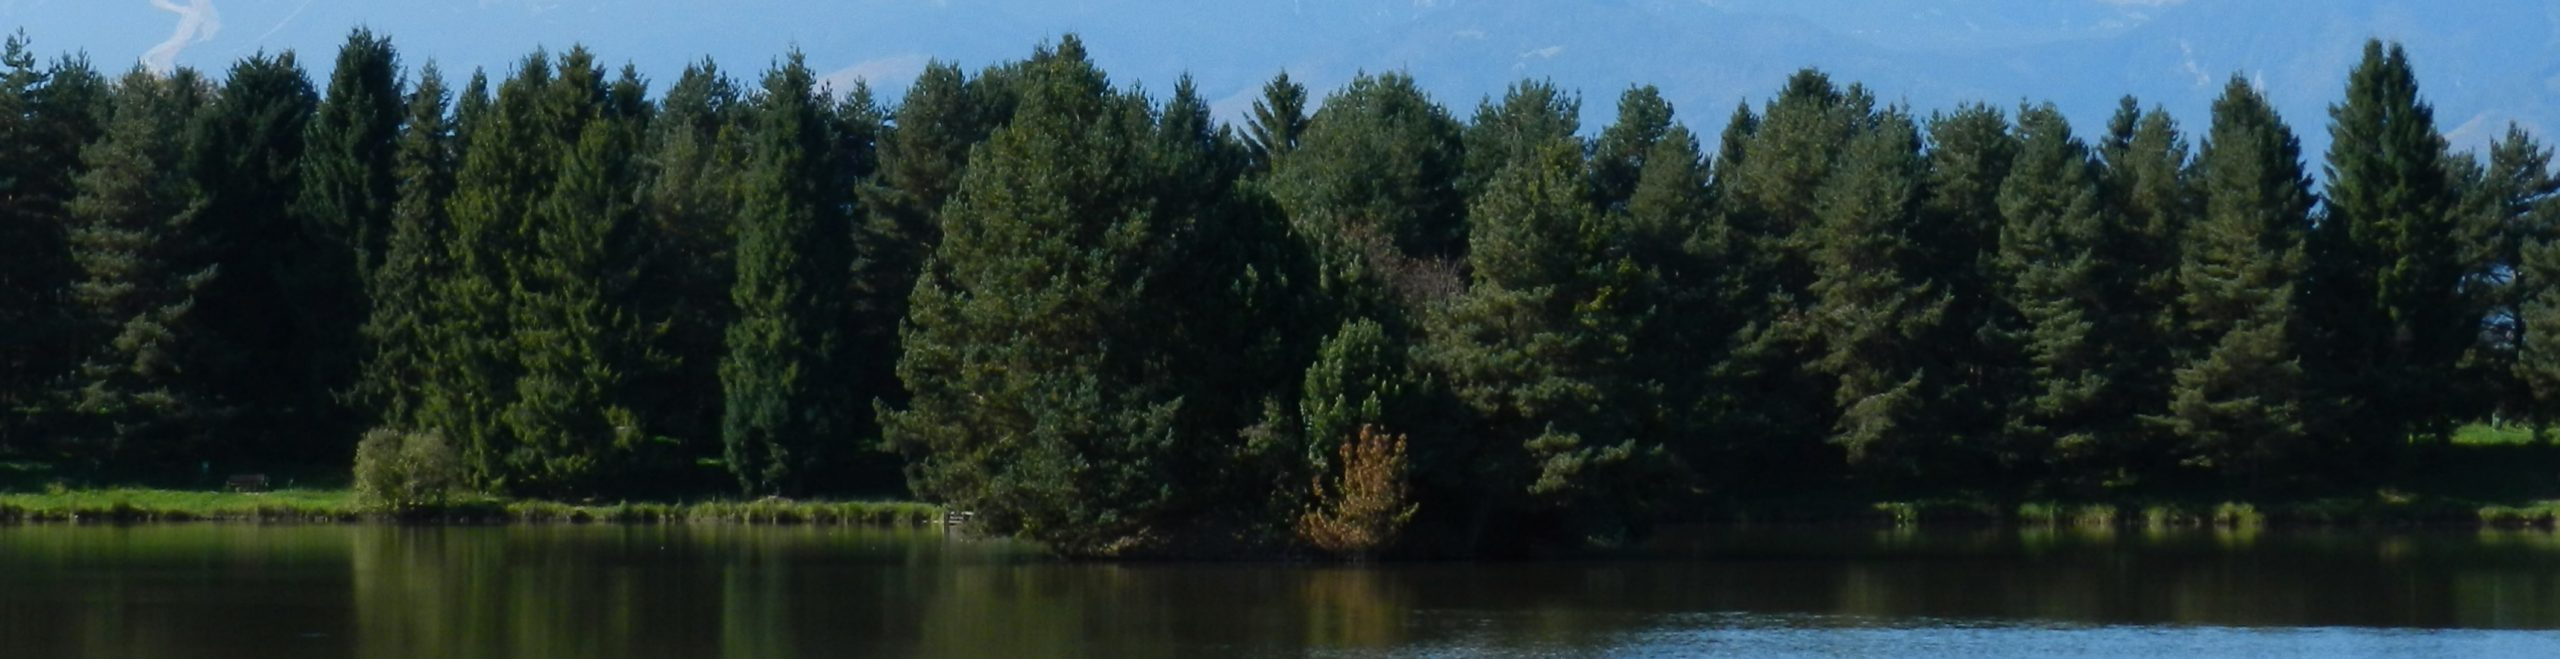 Evergreen Donor Tree: image of evergreen forest